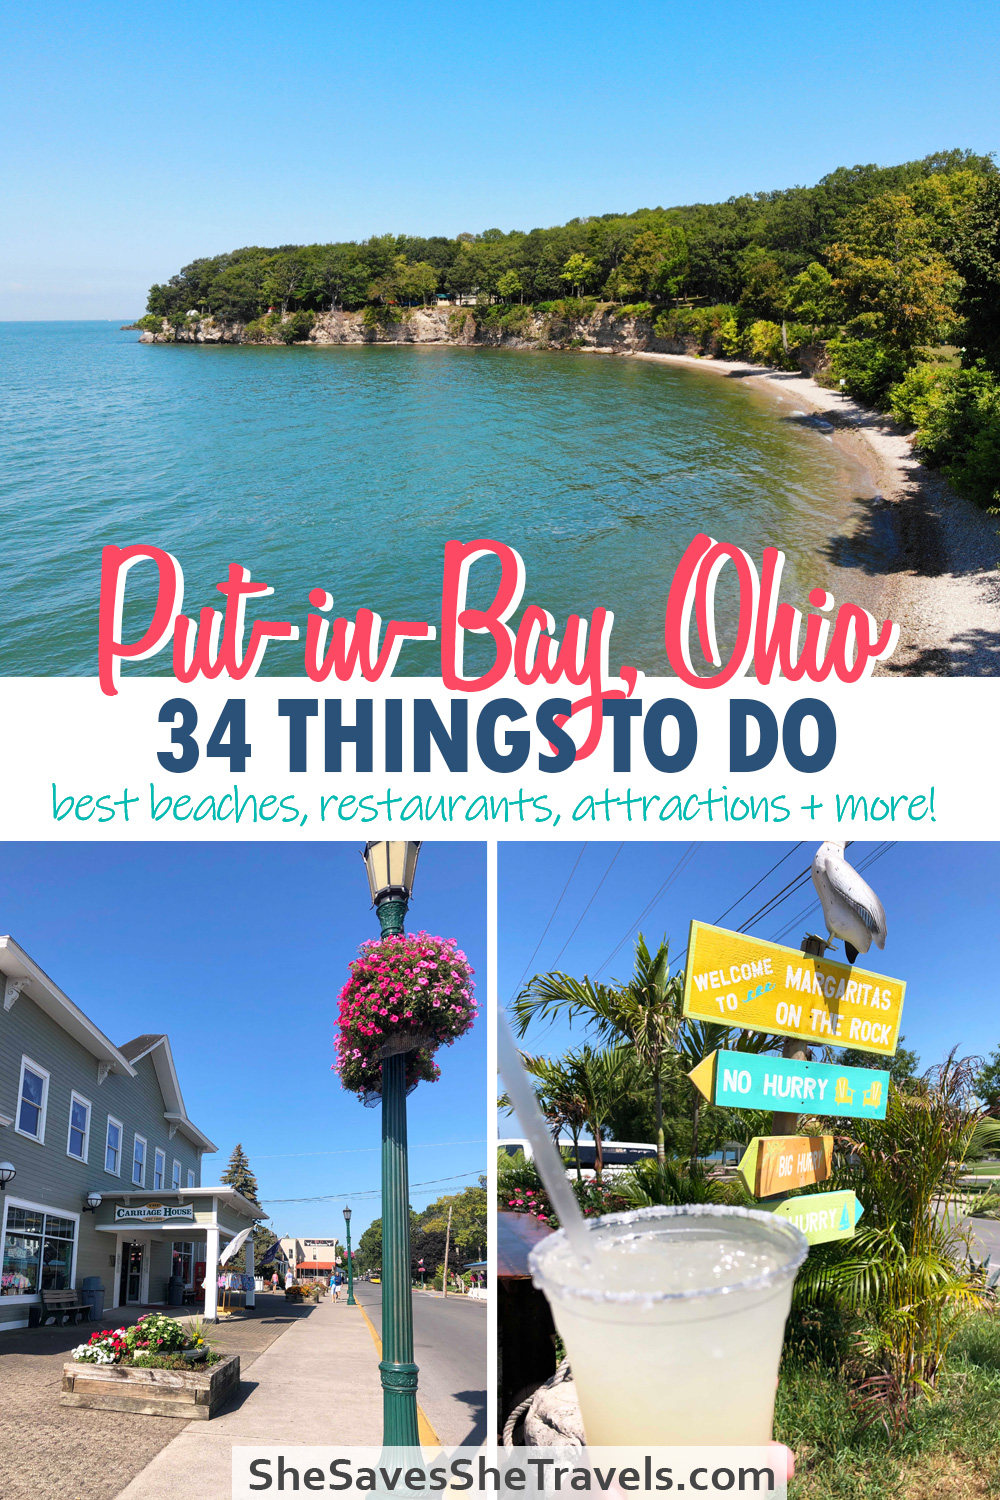 put-in-bay ohio 34 things to do best beaches restaurants attractions